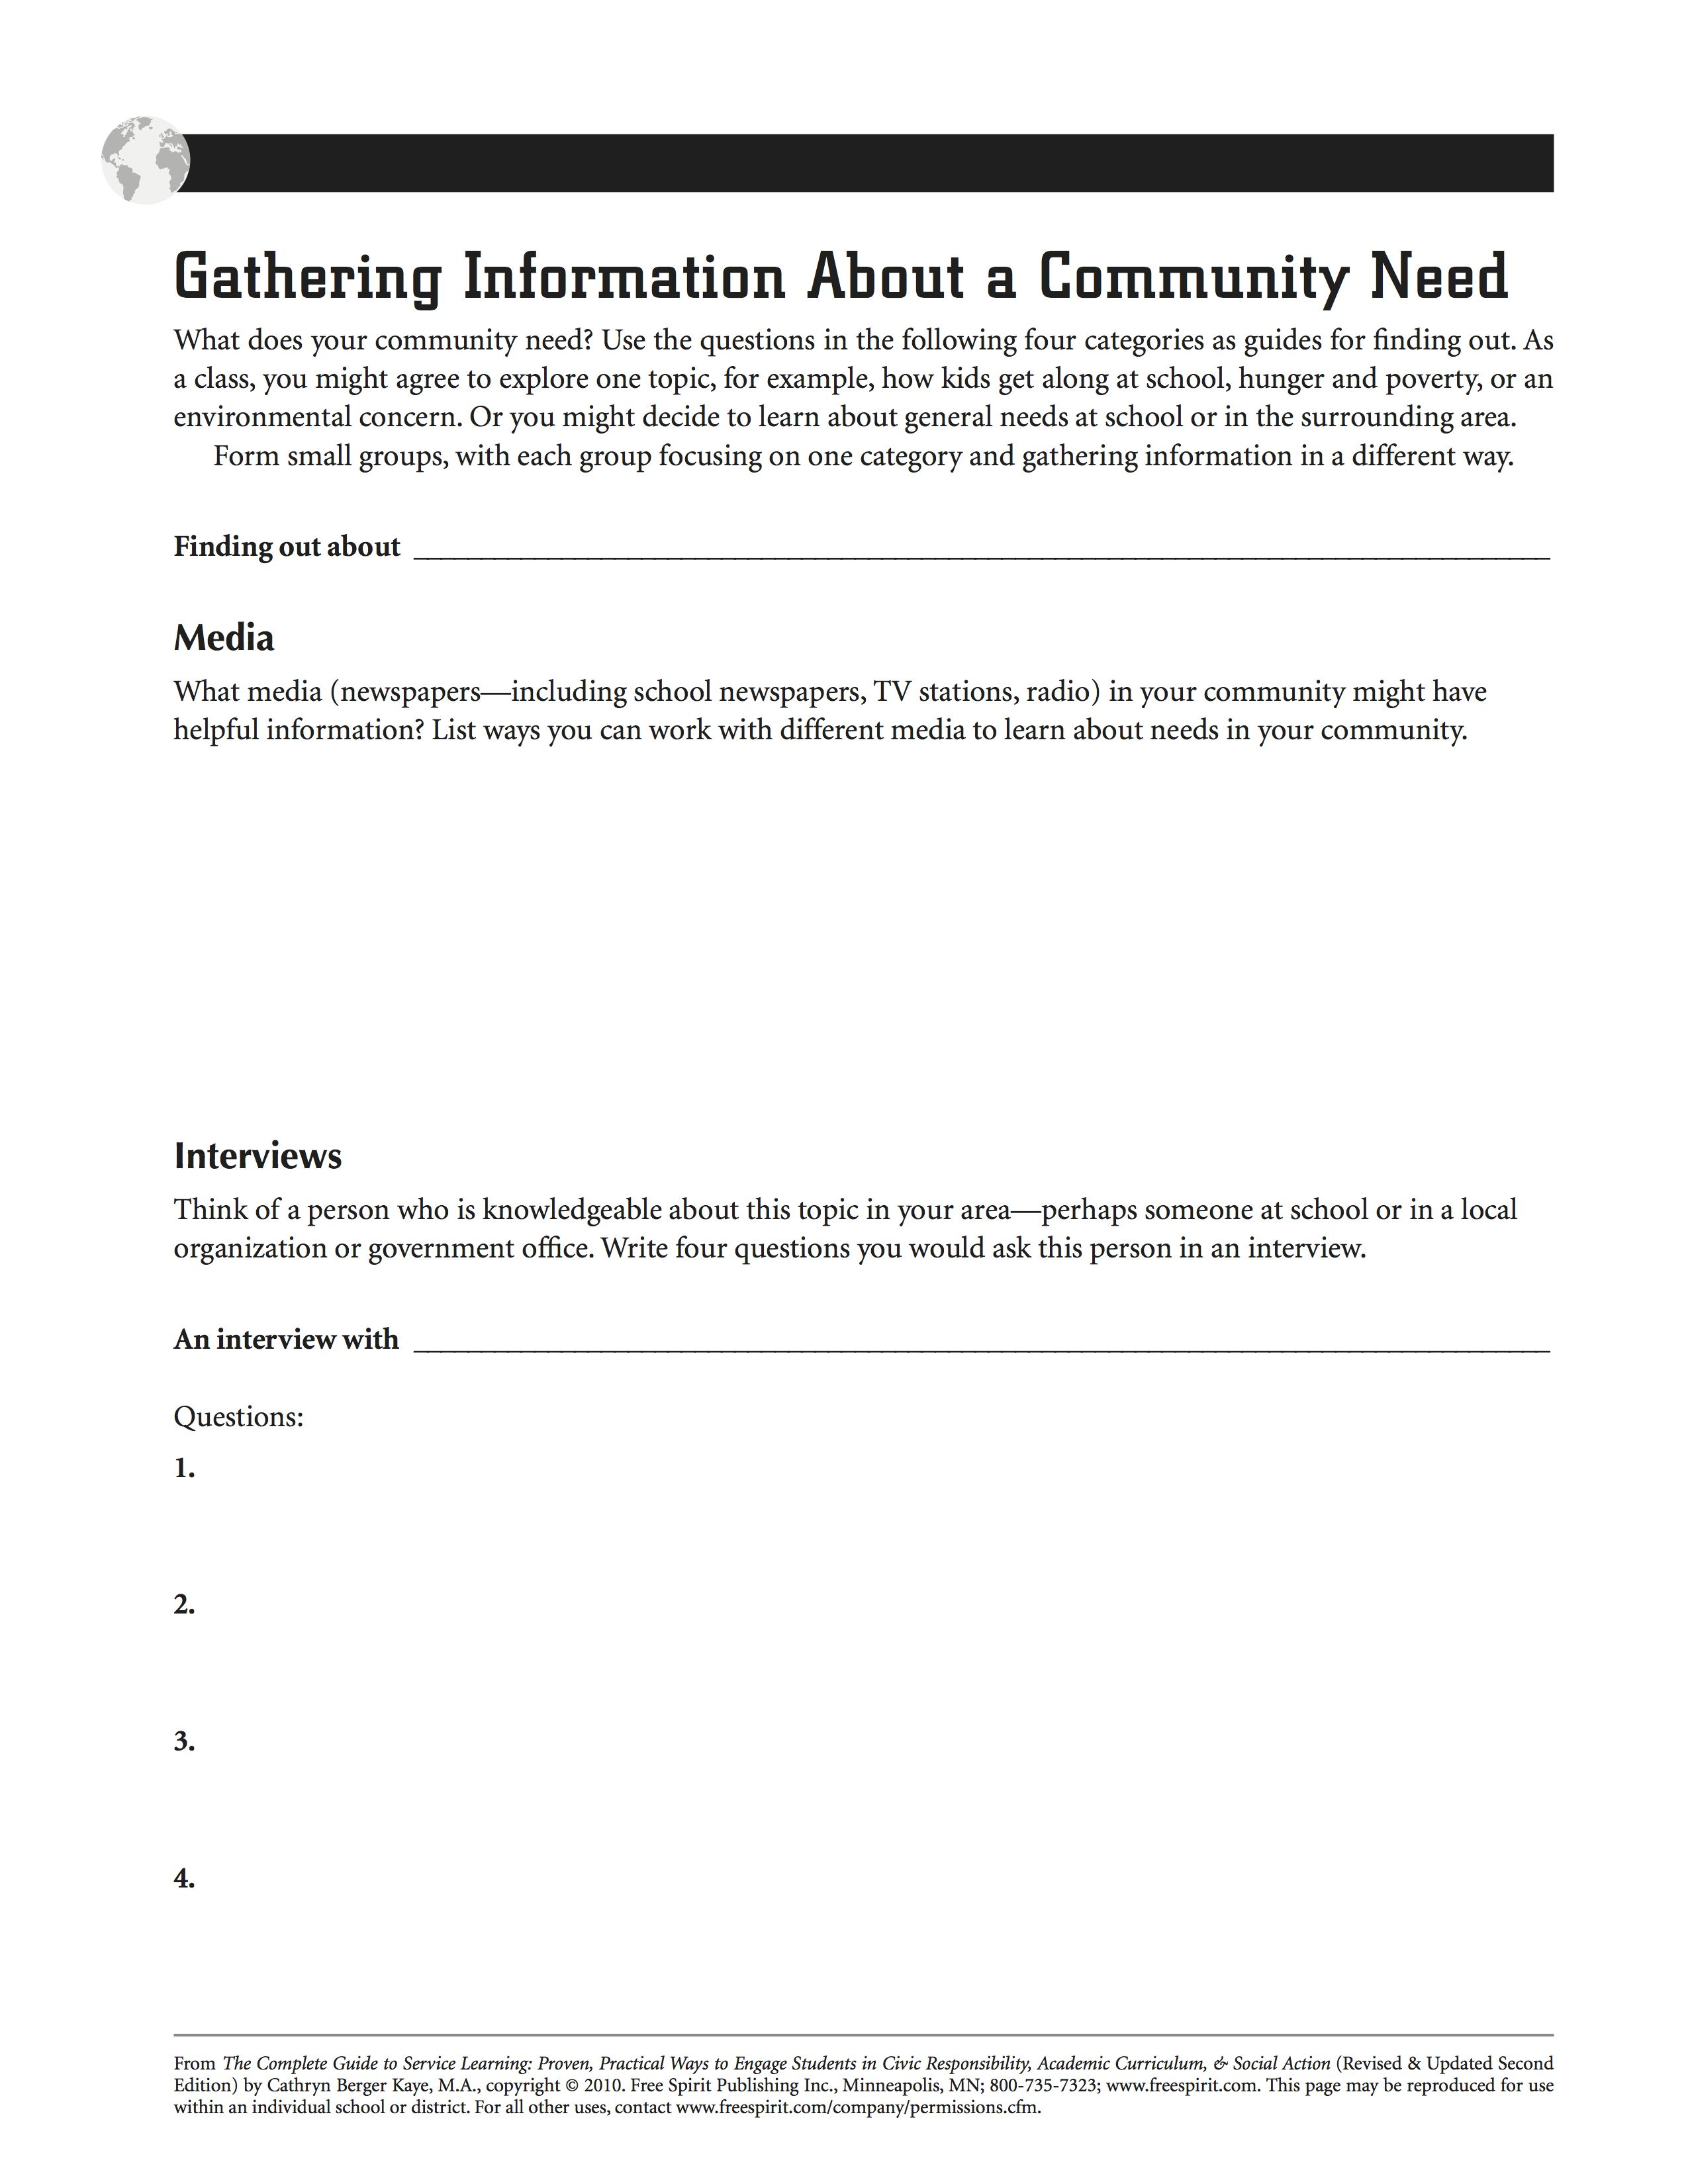 Free Printable Service Learning Worksheet Gathering